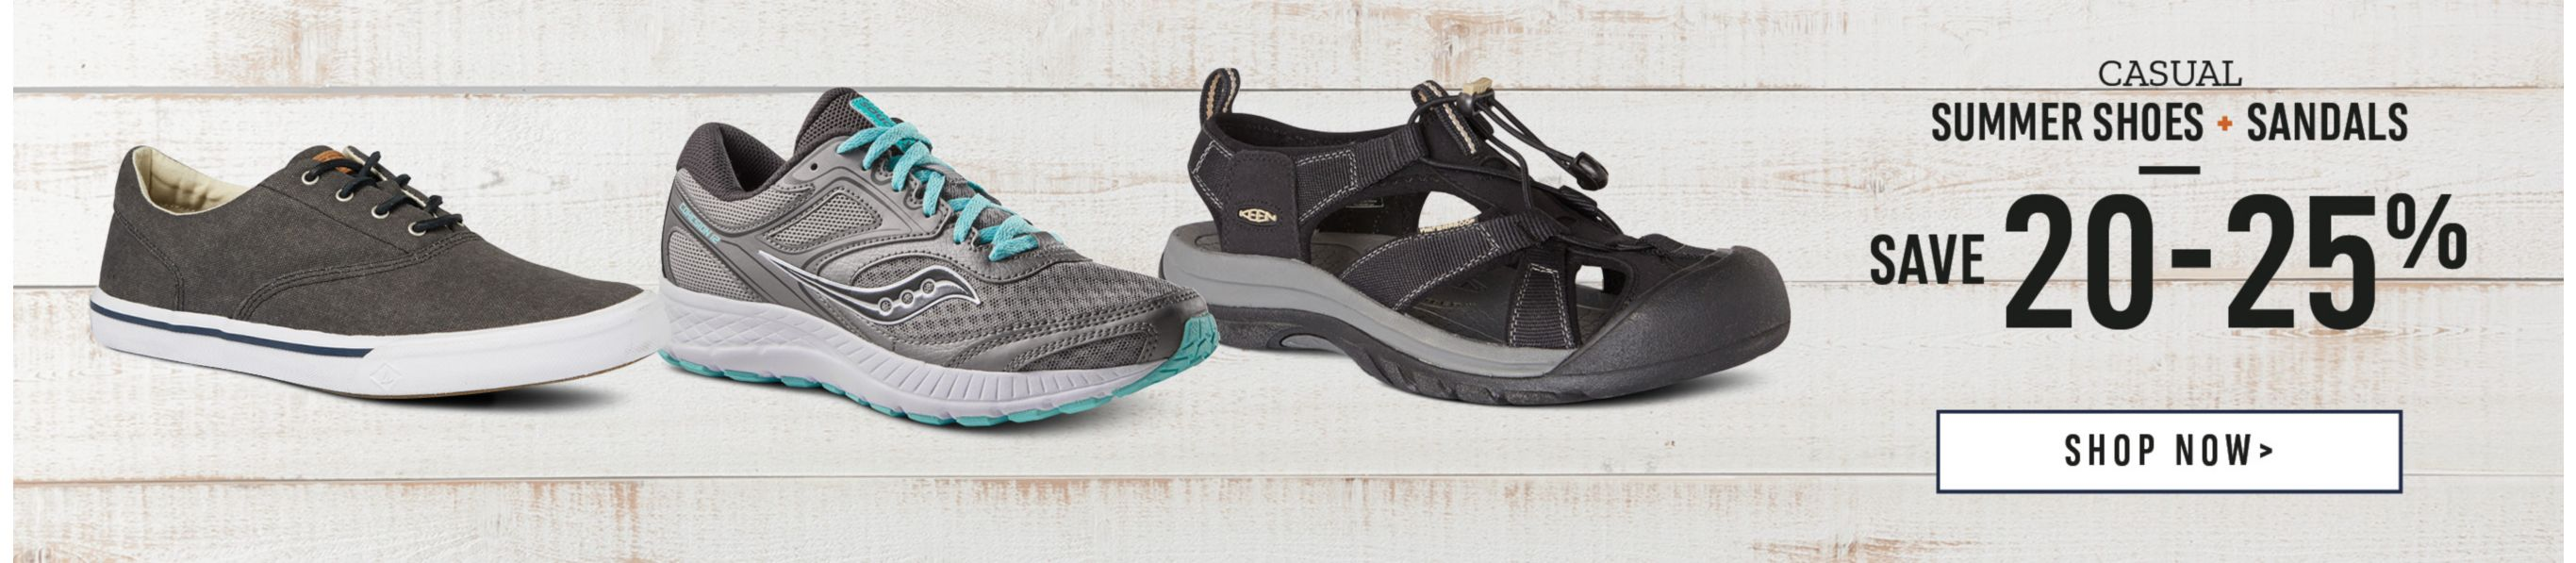 Casual Summer Shoes & Sandals: Save 20-25%. Shop Now.